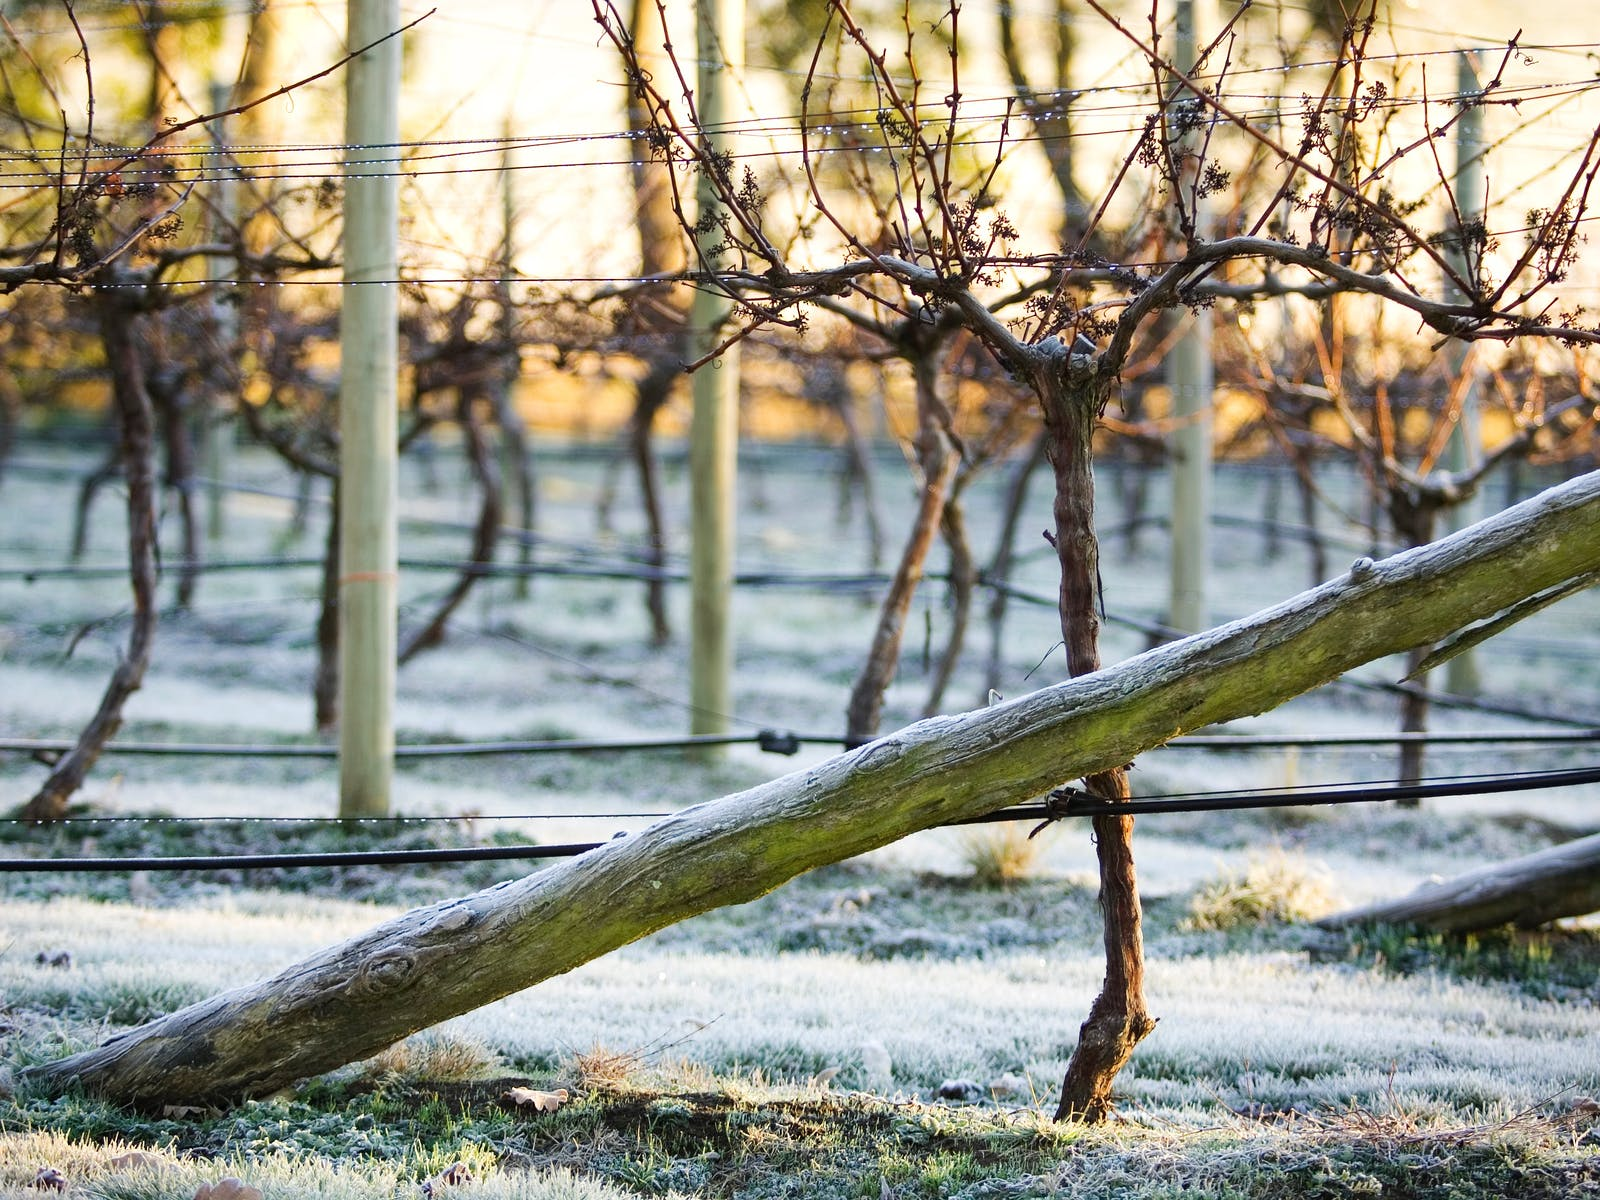 Frost on the vines